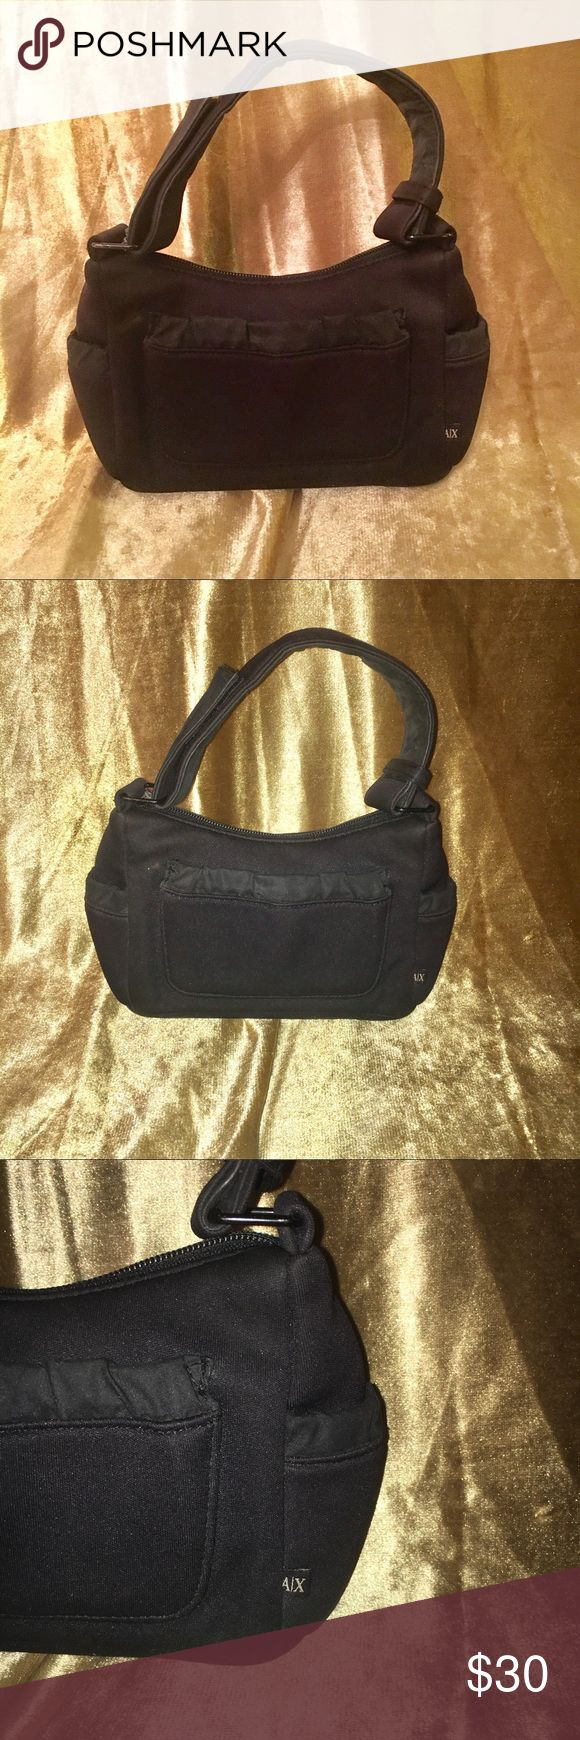 Small Armani Exchange Handbag 👜 Black Armani Exchange Bag With Side pockets - zipper closure and inside pocket. Cute for trips to mall/ perfect size for a tween or someone who is a minimalist and prefers a small purse A/X Armani Exchange Bags Mini Bags